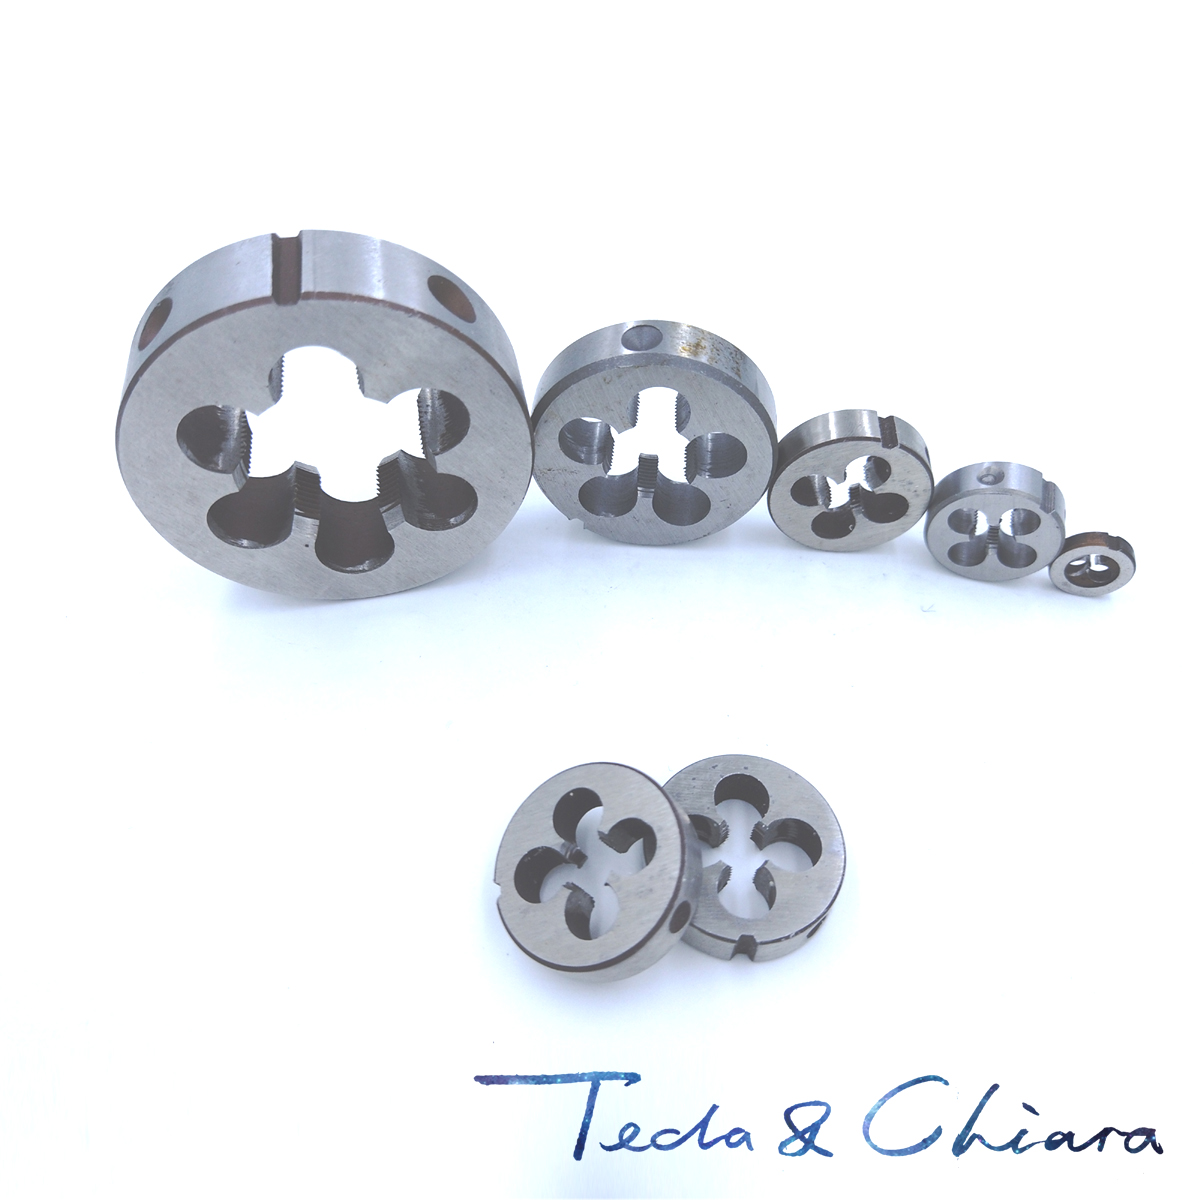 1Pc M10 X 0.75mm 1mm 1.25mm 1.5mm Metric Left Hand Die Pitch Threading Tools For Mold Machining *  0.75 1 1.25 1.5